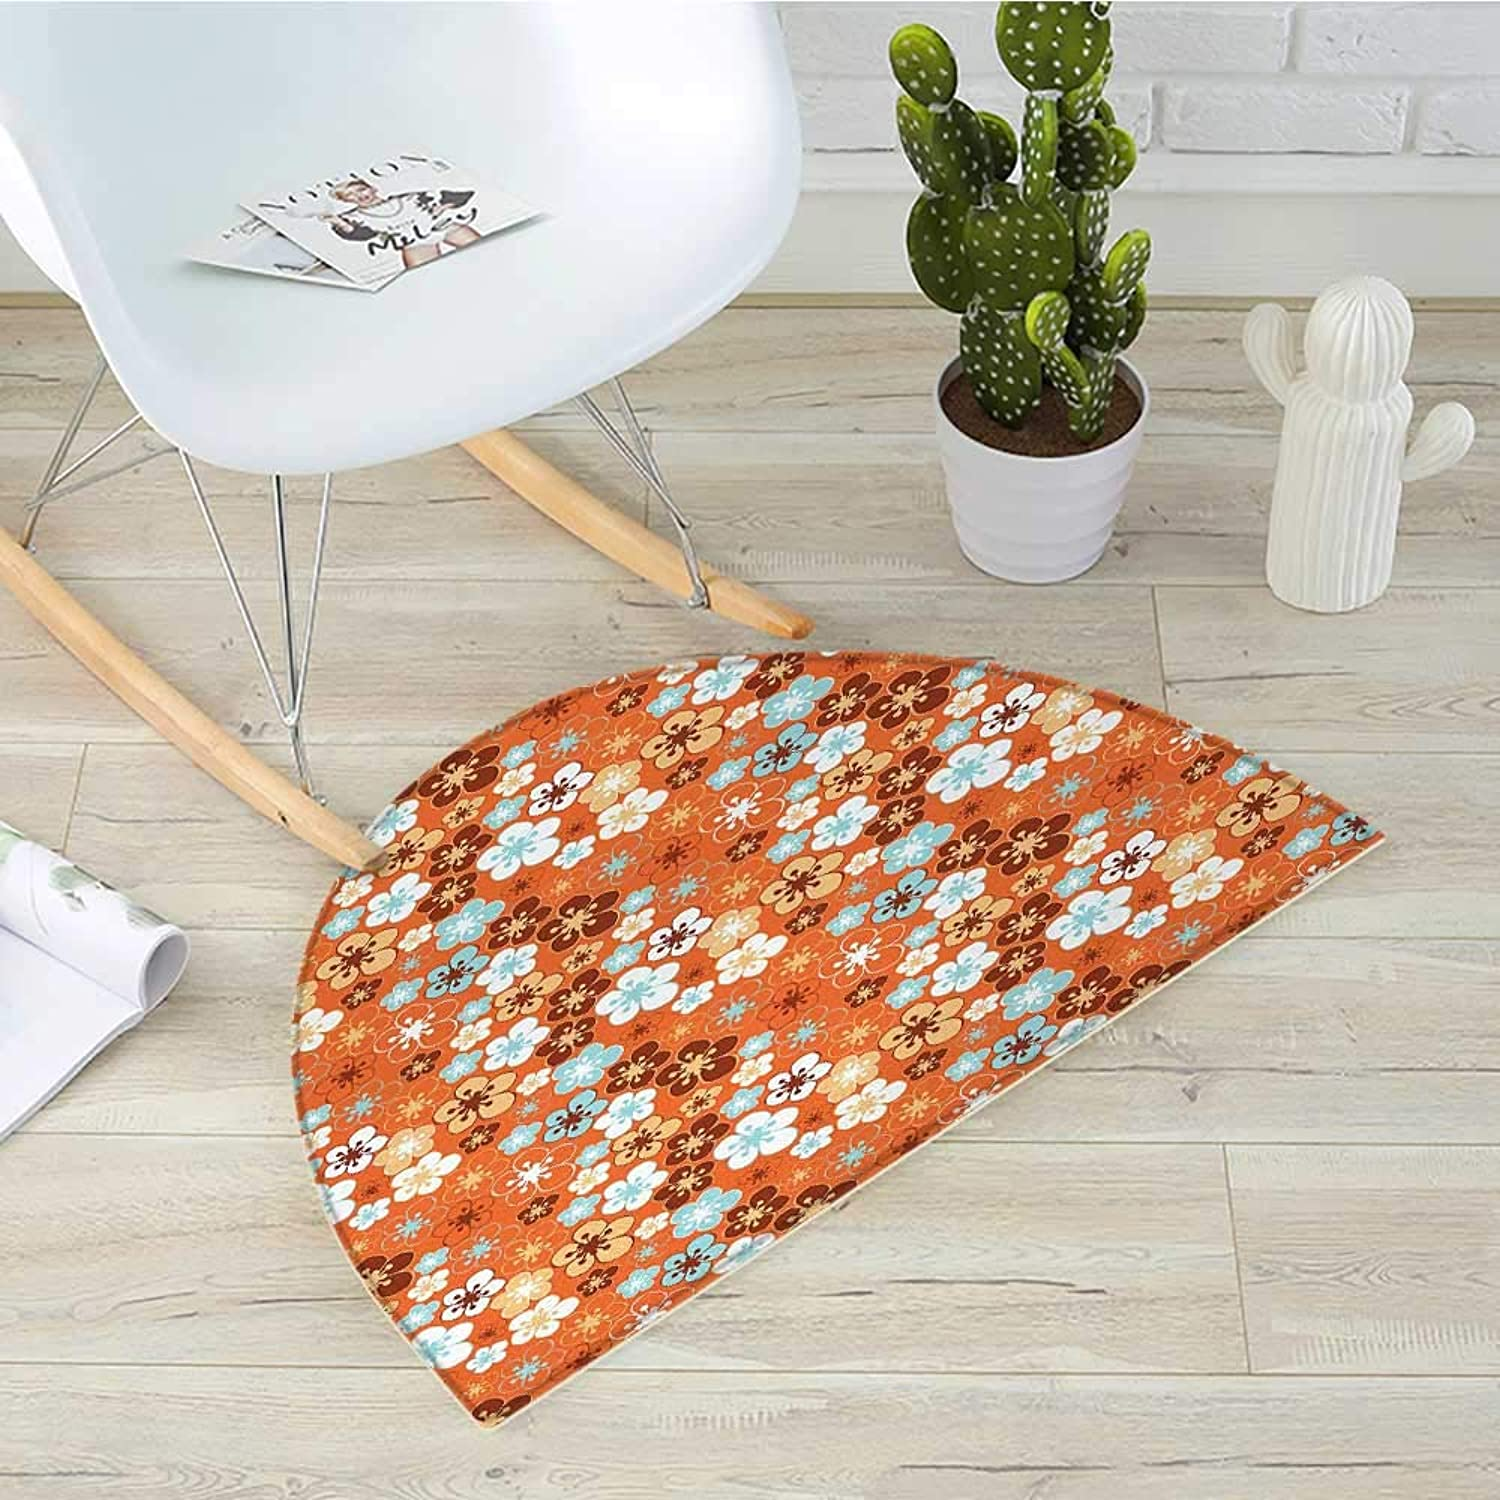 orange Semicircular CushionCute Old Fashioned Doodle Flora Abstract Blooming Meadow in Summer Theme Entry Door Mat H 35.4  xD 53.1  Sky bluee orange Brown